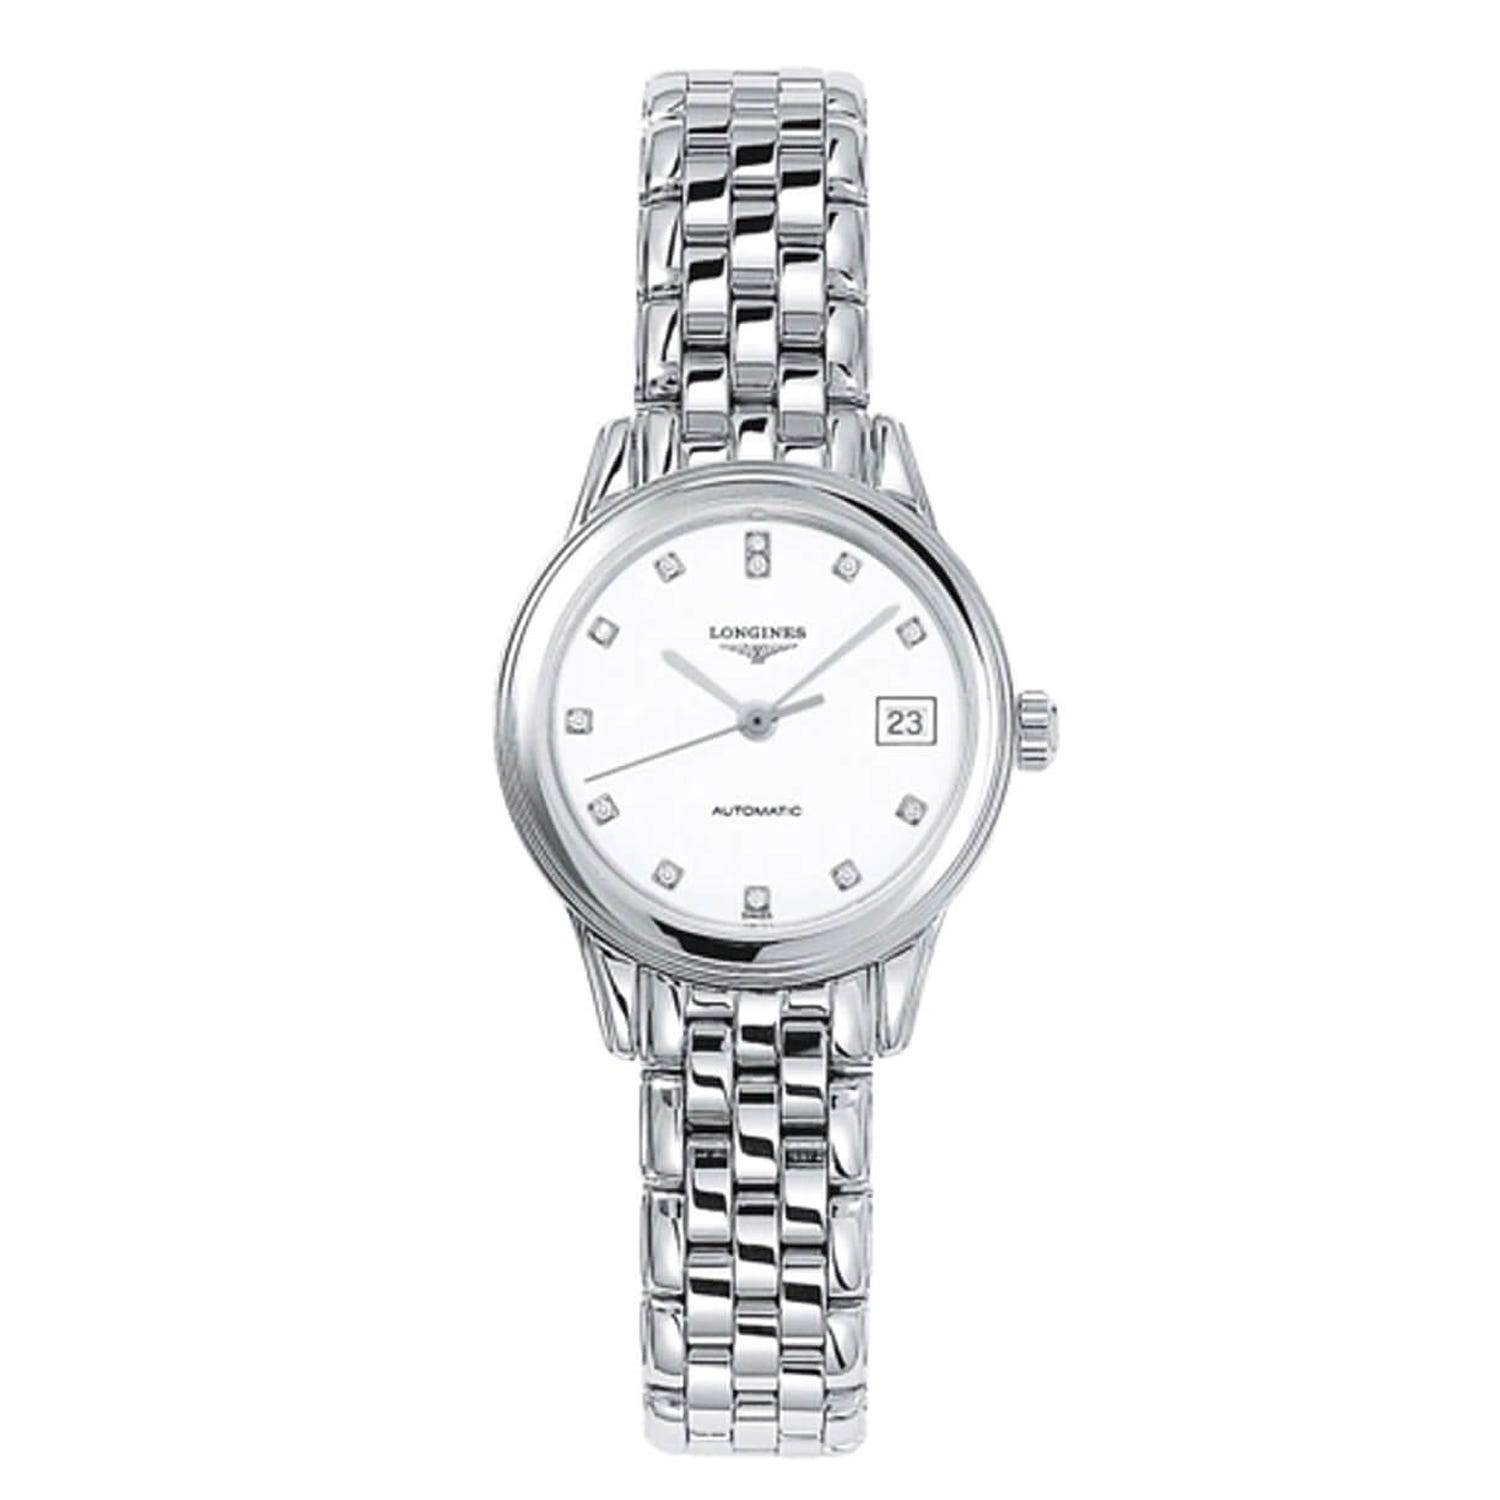 Longines Flagship ladies' stainless steel diamond-set automatic watch